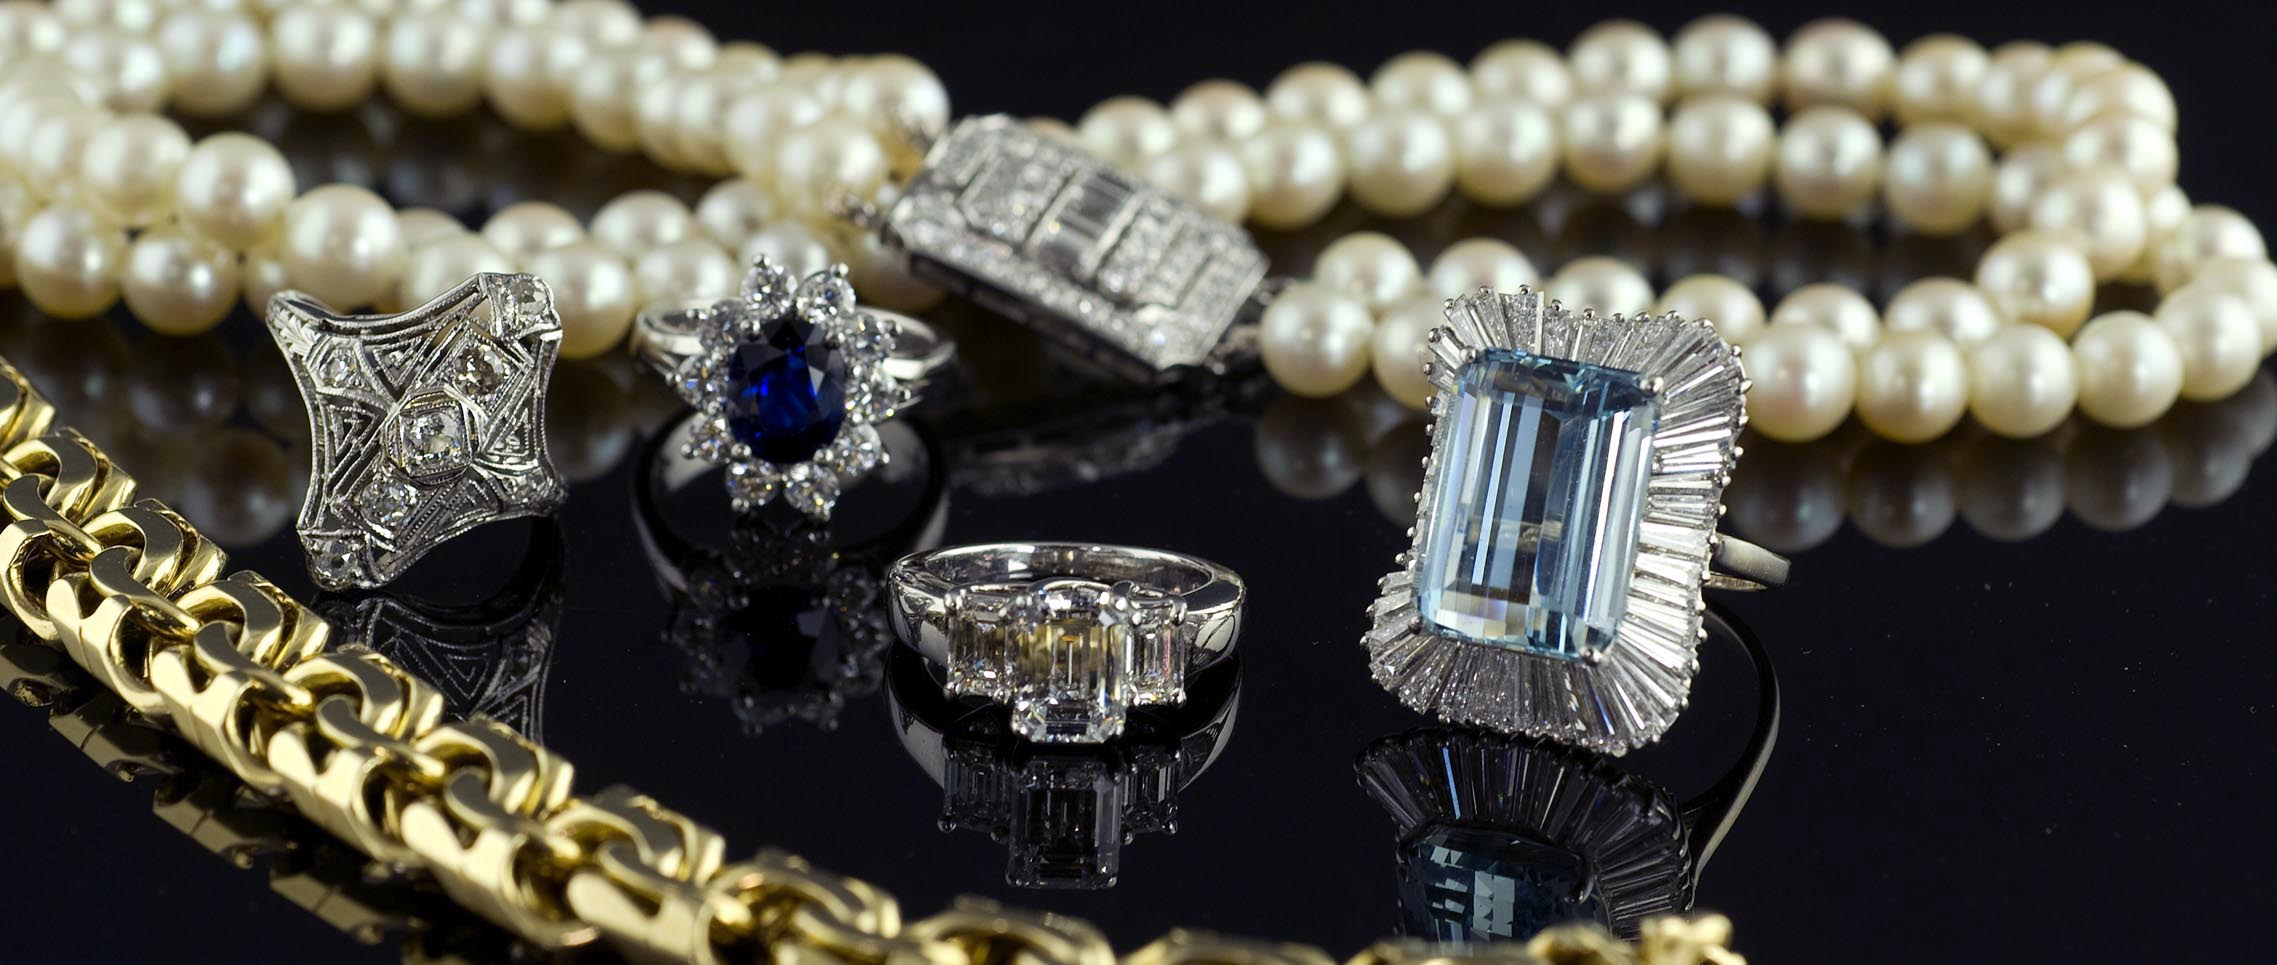 Krombholz is now accepting gently worn jewelry on consignment.